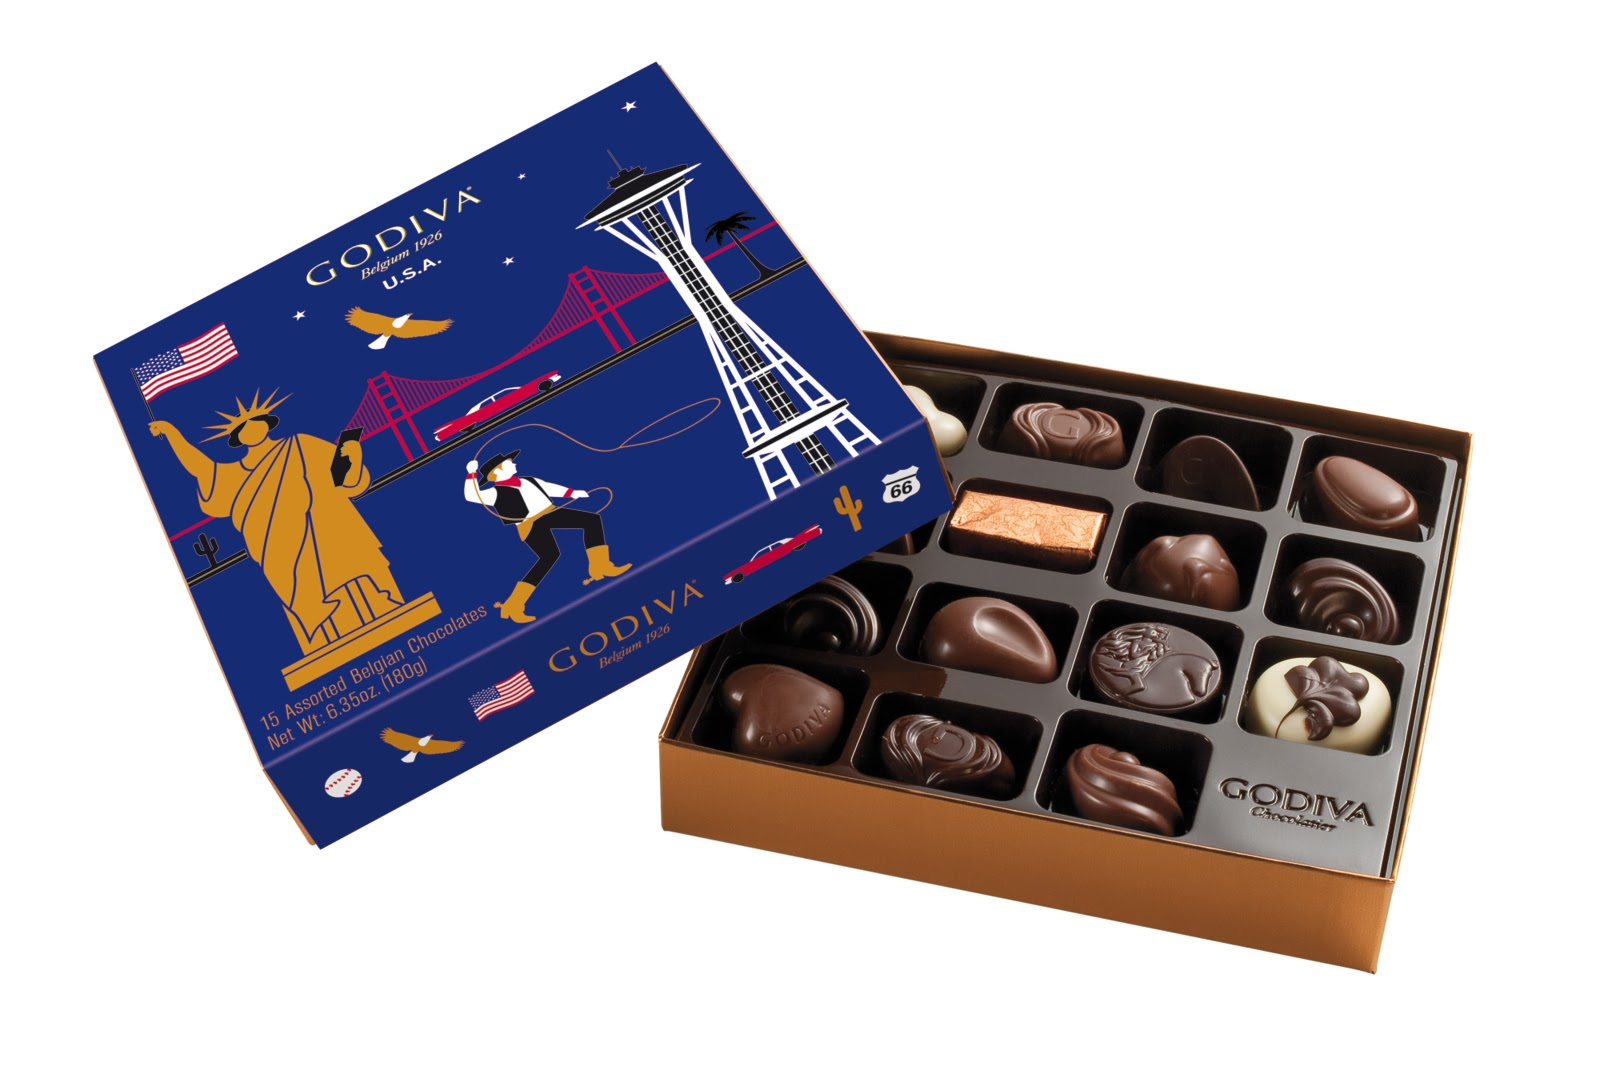 Essential Communications Godiva Launches Exciting New